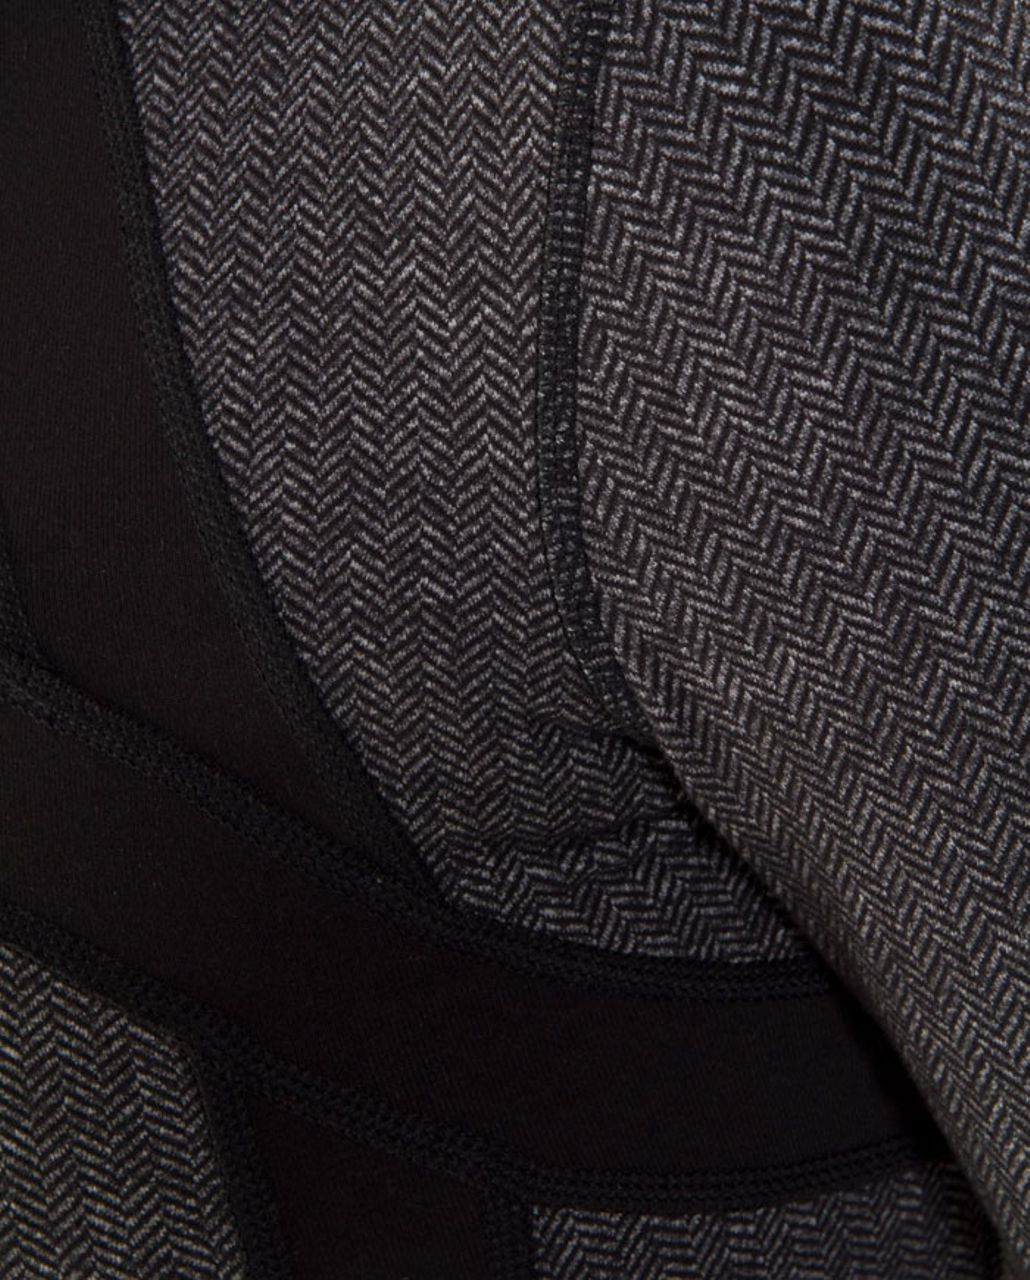 Lululemon Define Jacket *Herringbone - Black Heathered Deep Coal Herringbone /  Black